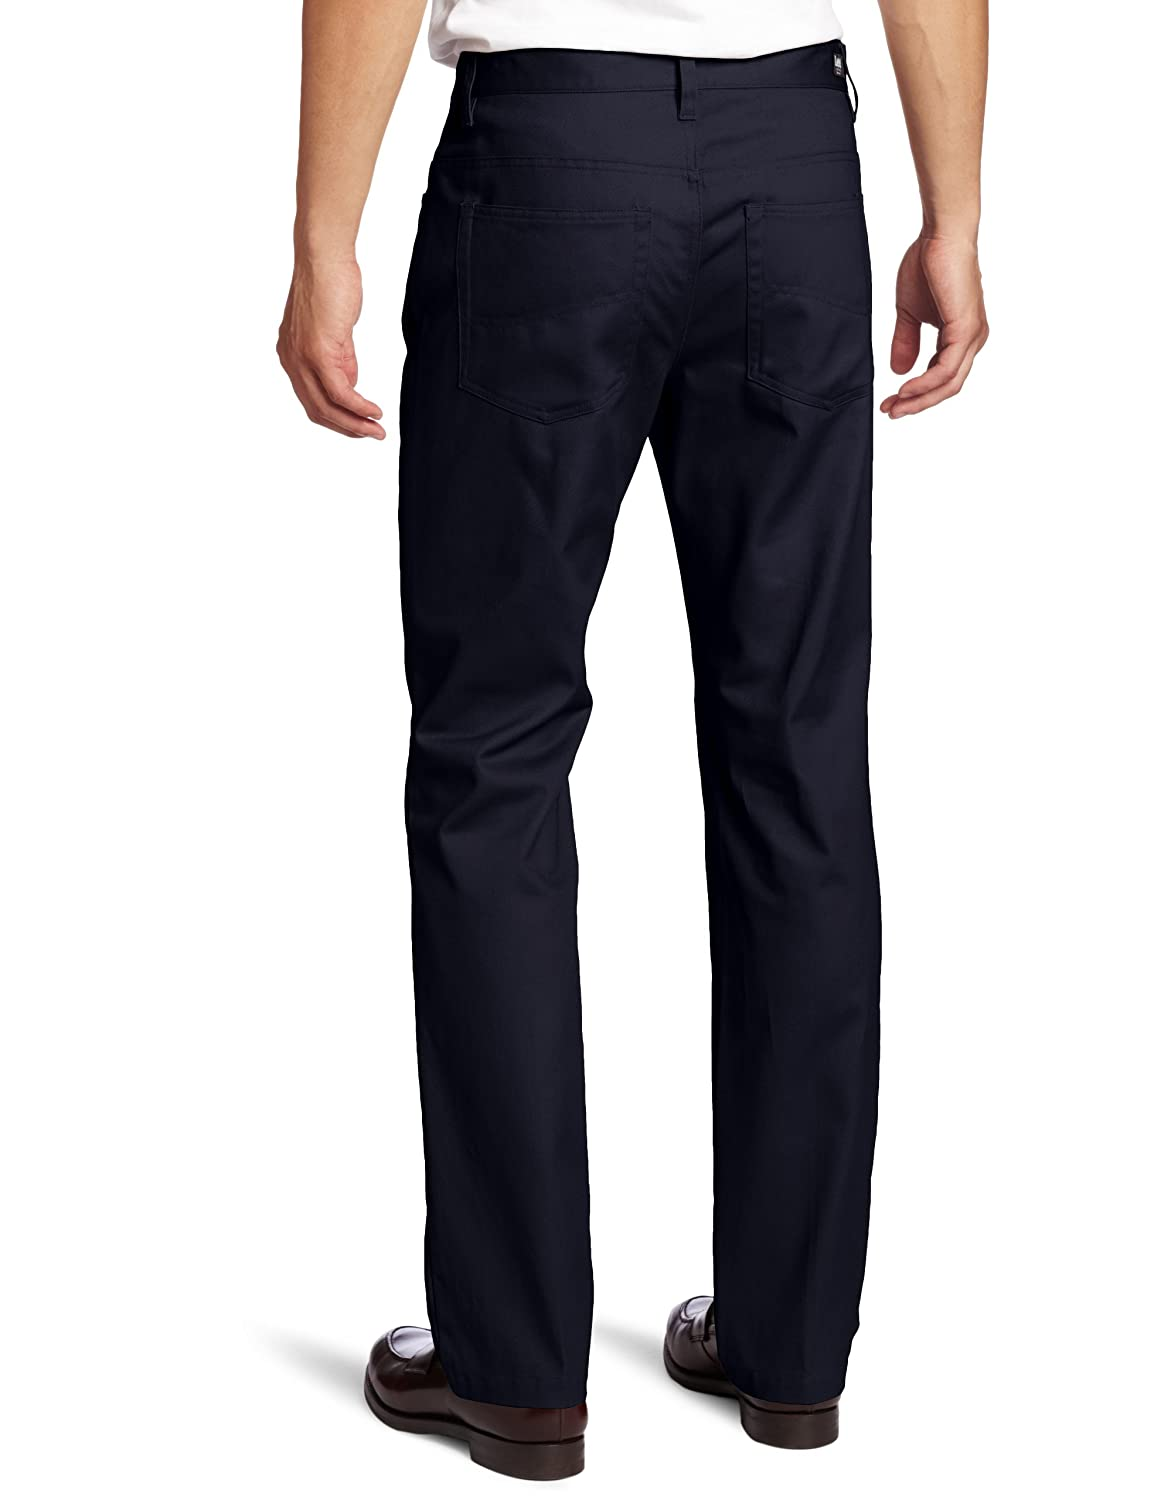 Lee Uniforms Mens Slim Straight 5 Pocket Pant